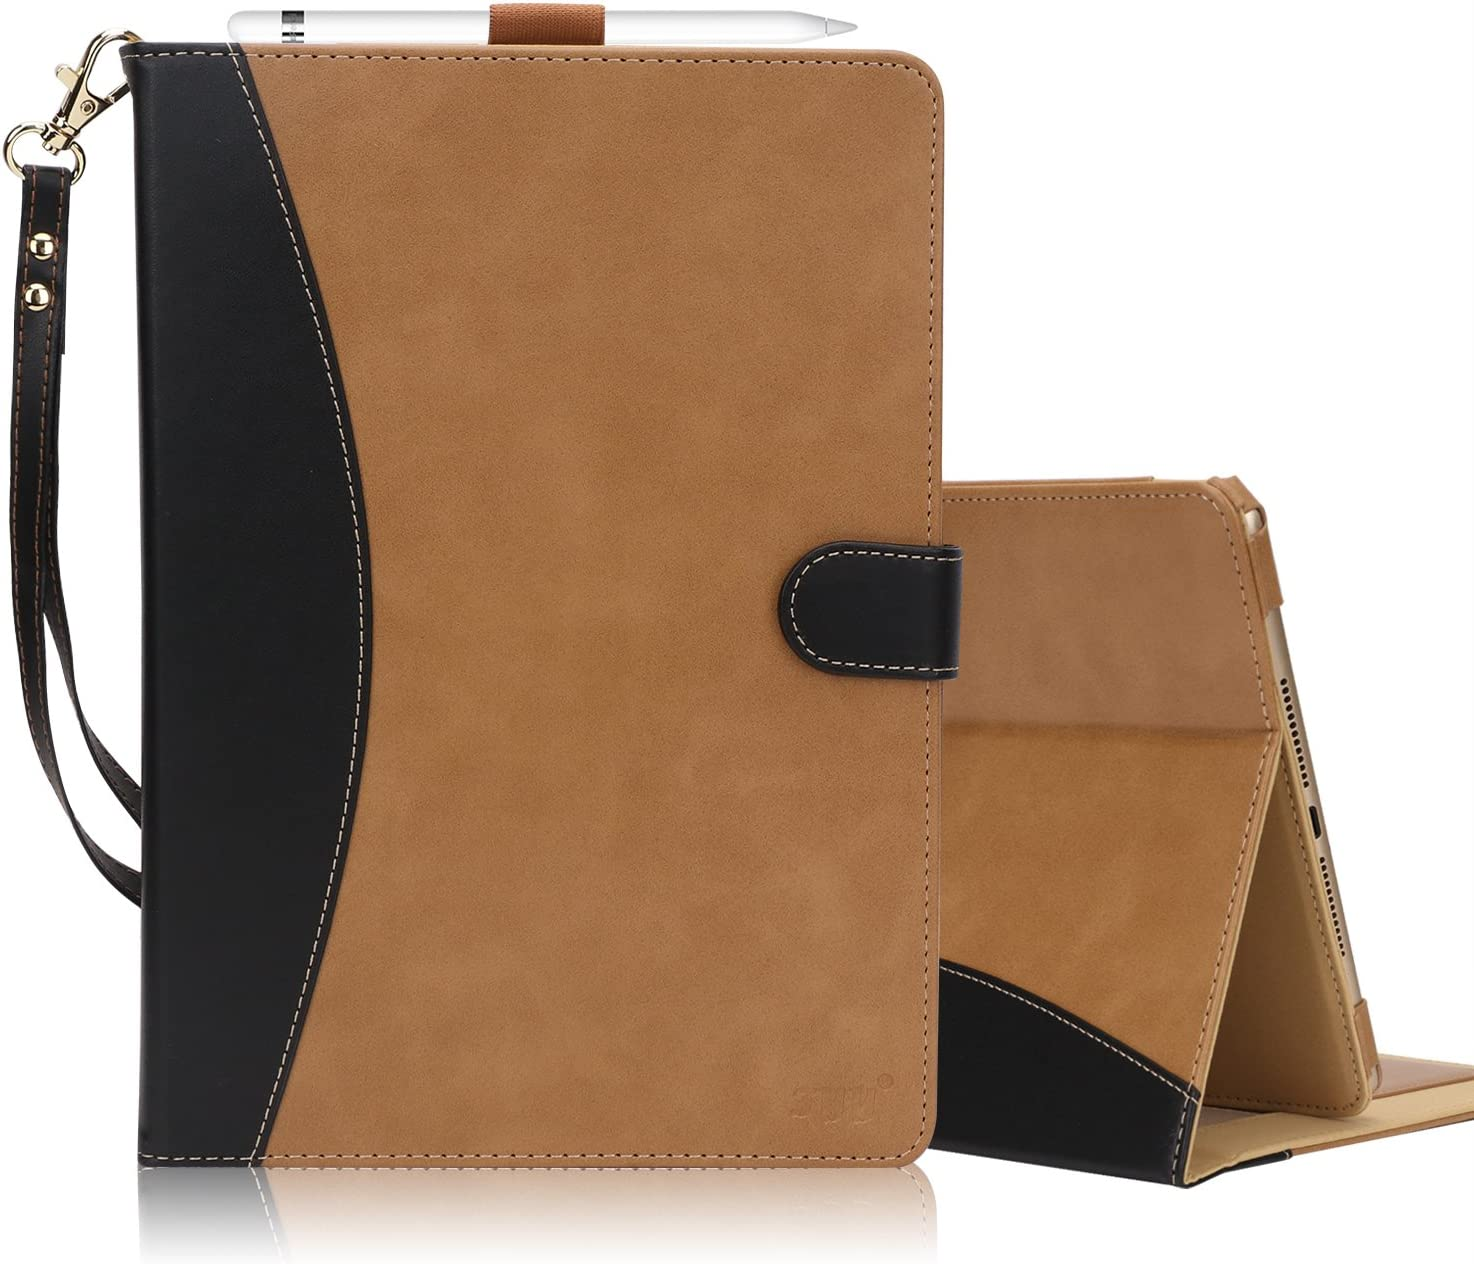 FYY [Leather Case] with [Apple Pencil Holder] for Apple iPad 9.7 2018/2017/iPad Air 2/iPad Air, Flip Folio Stand Case Protective Cover with [Auto Sleep Wake], Multiple Stand Angles, Card Slots Brown